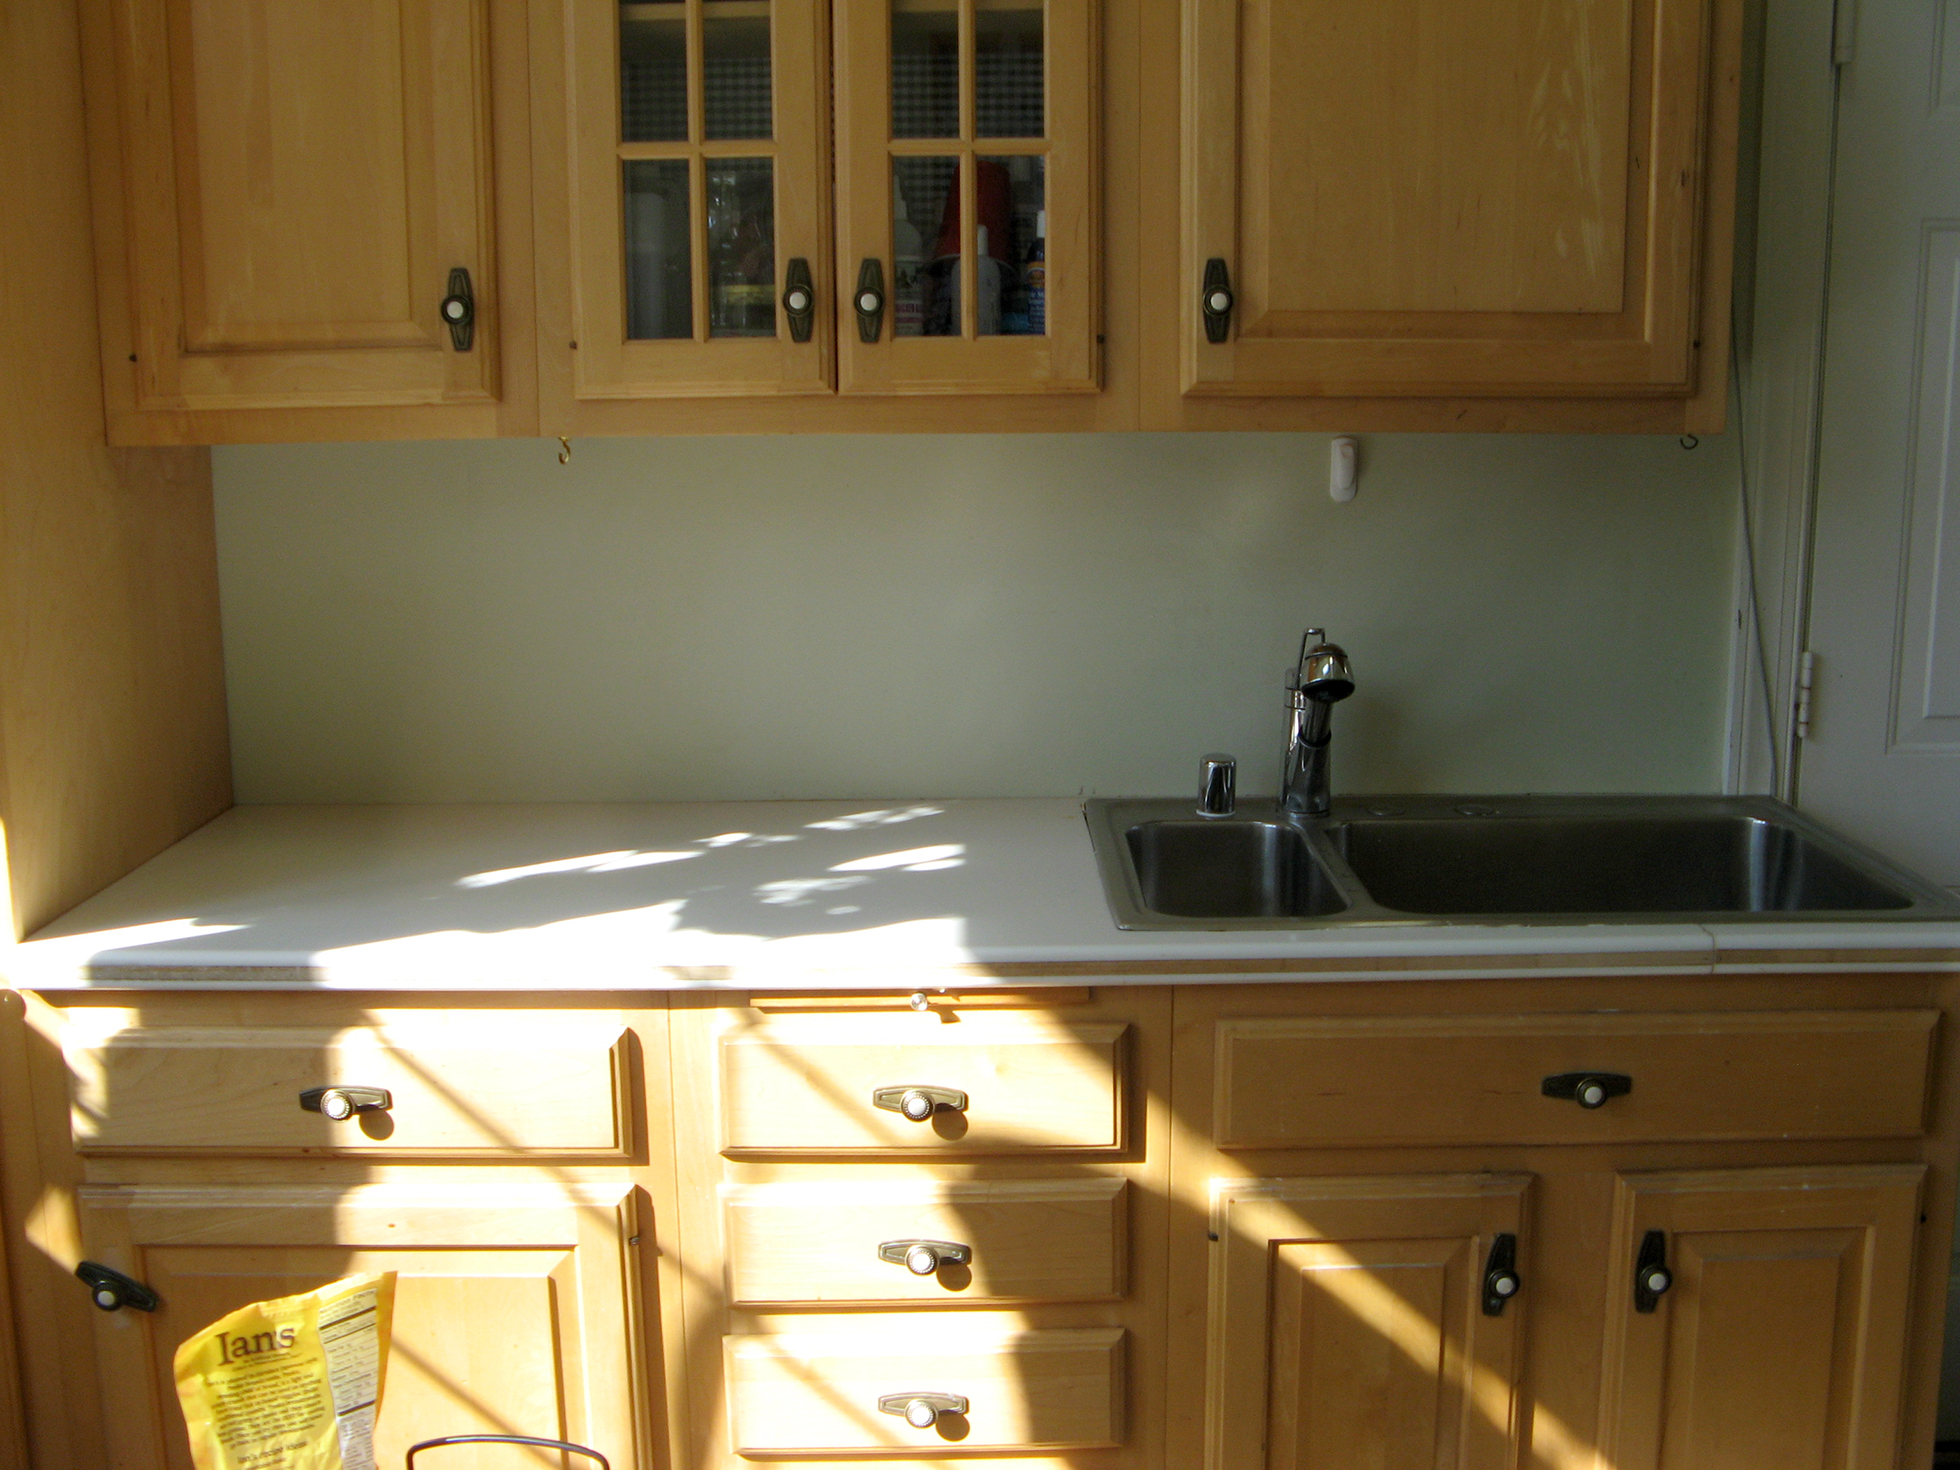 Blond cabinets with faucet | Faux Granite Countertops